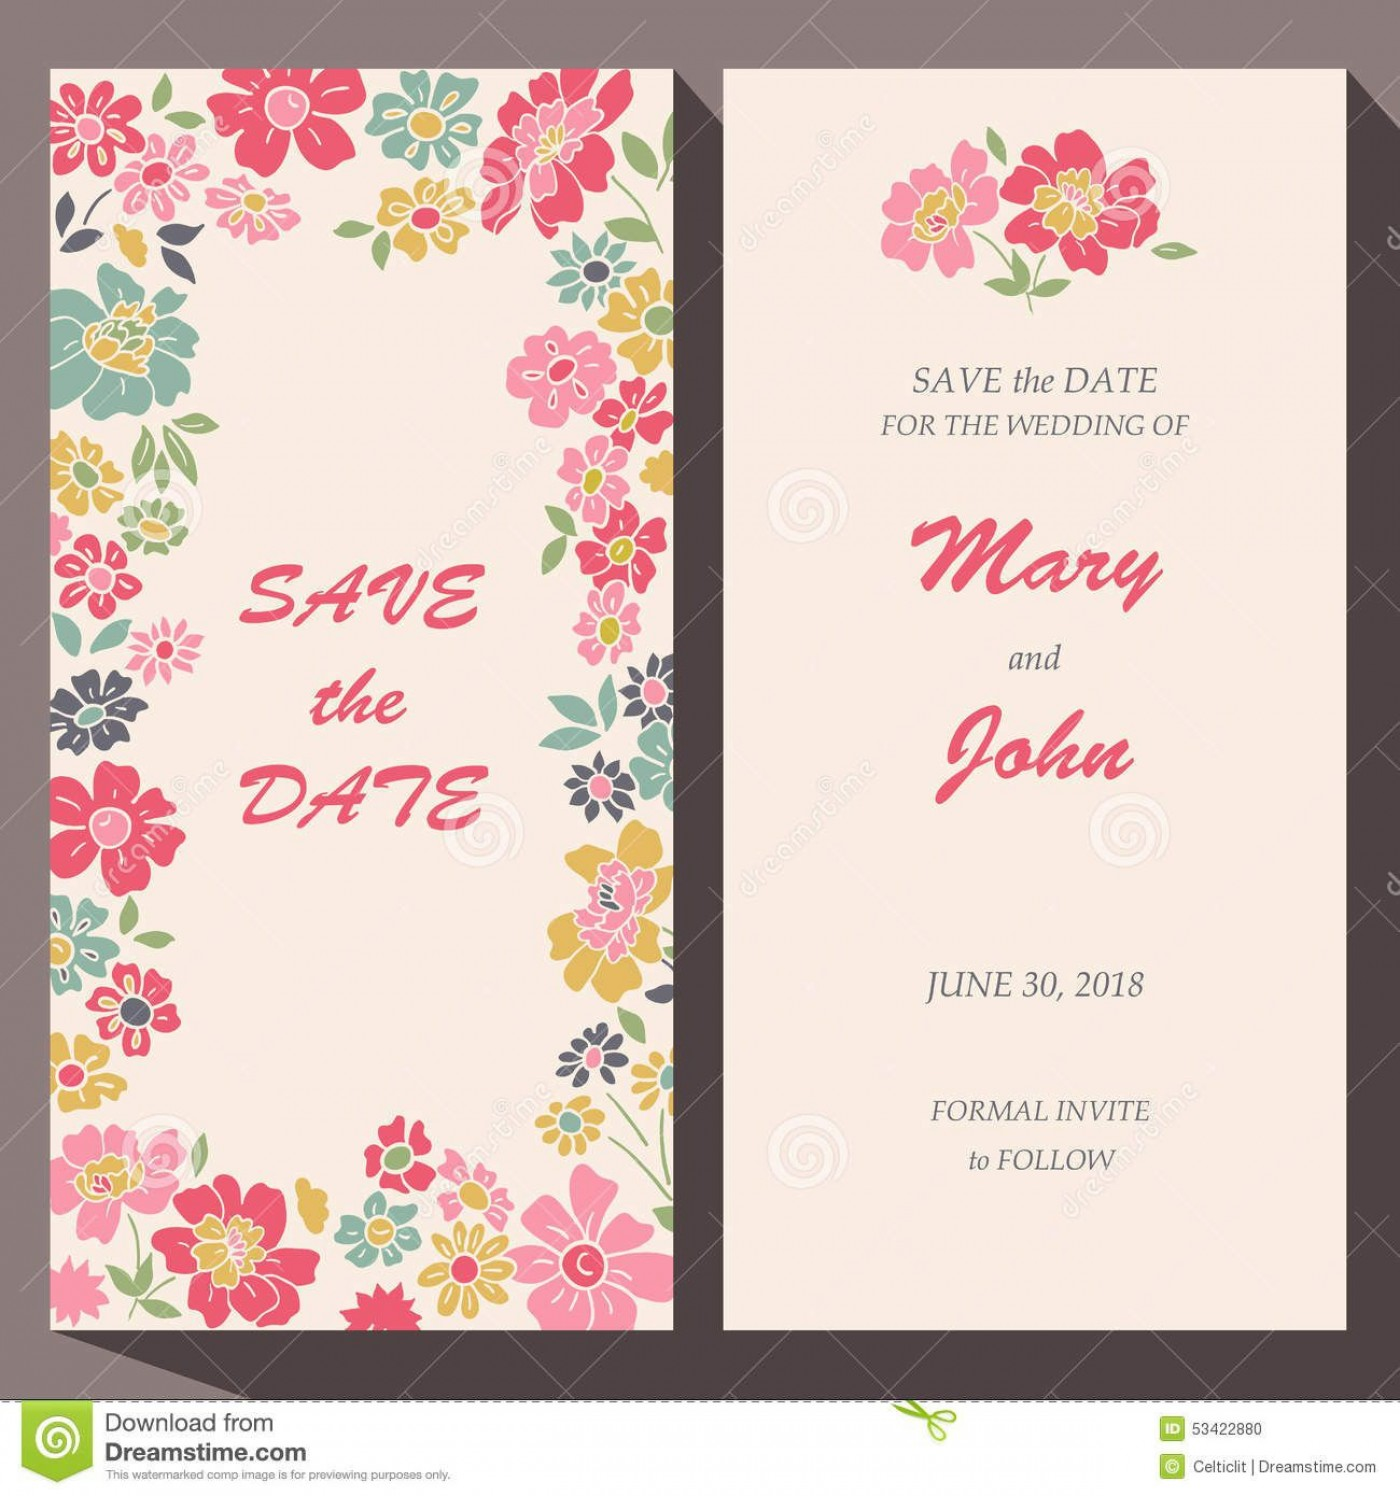 009 Awful Save The Date Birthday Card Template Design  Free Printable1400